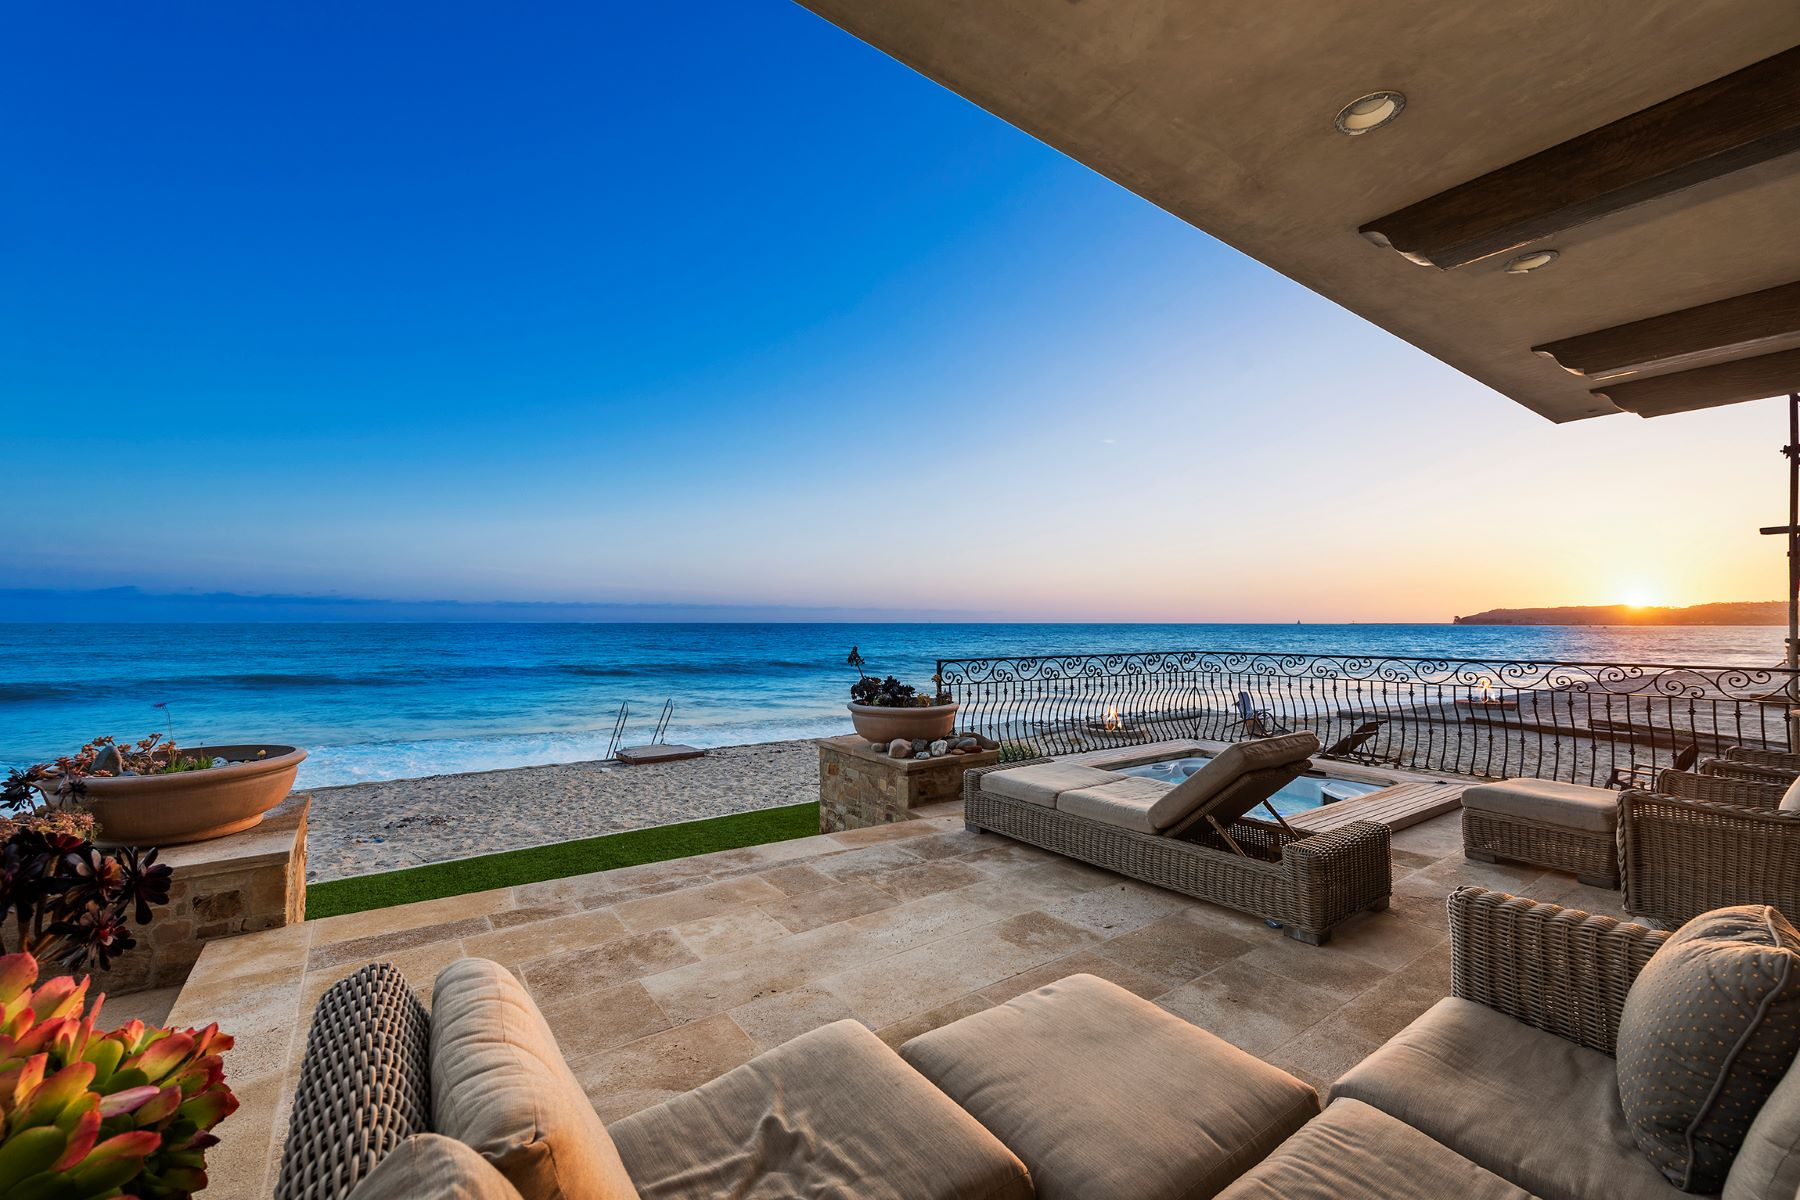 Single Family Homes for Sale at 35101 Beach Road Dana Point, California 92624 United States